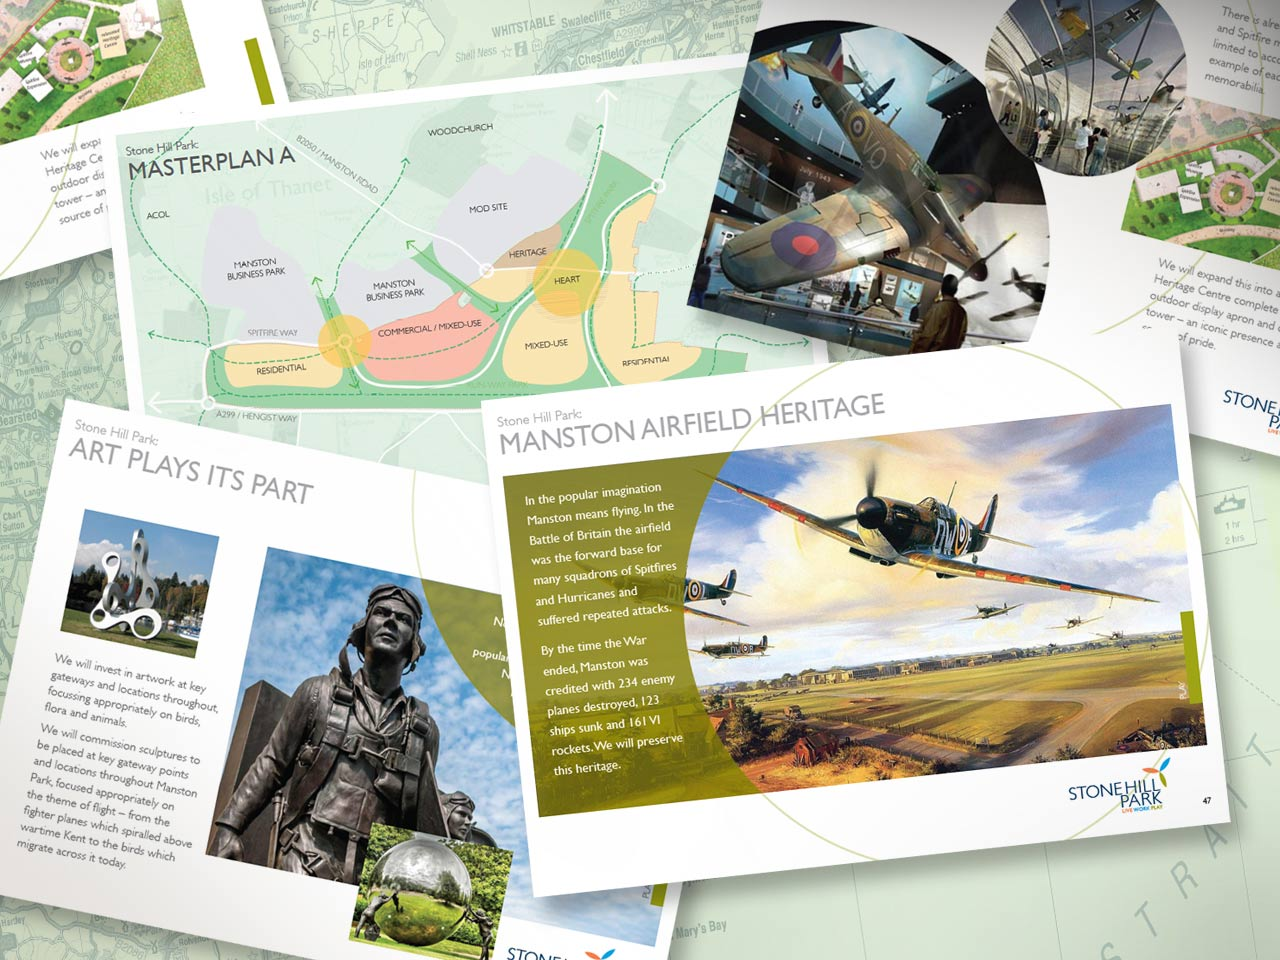 sample pages of the Stone Hill Park marketing presentation